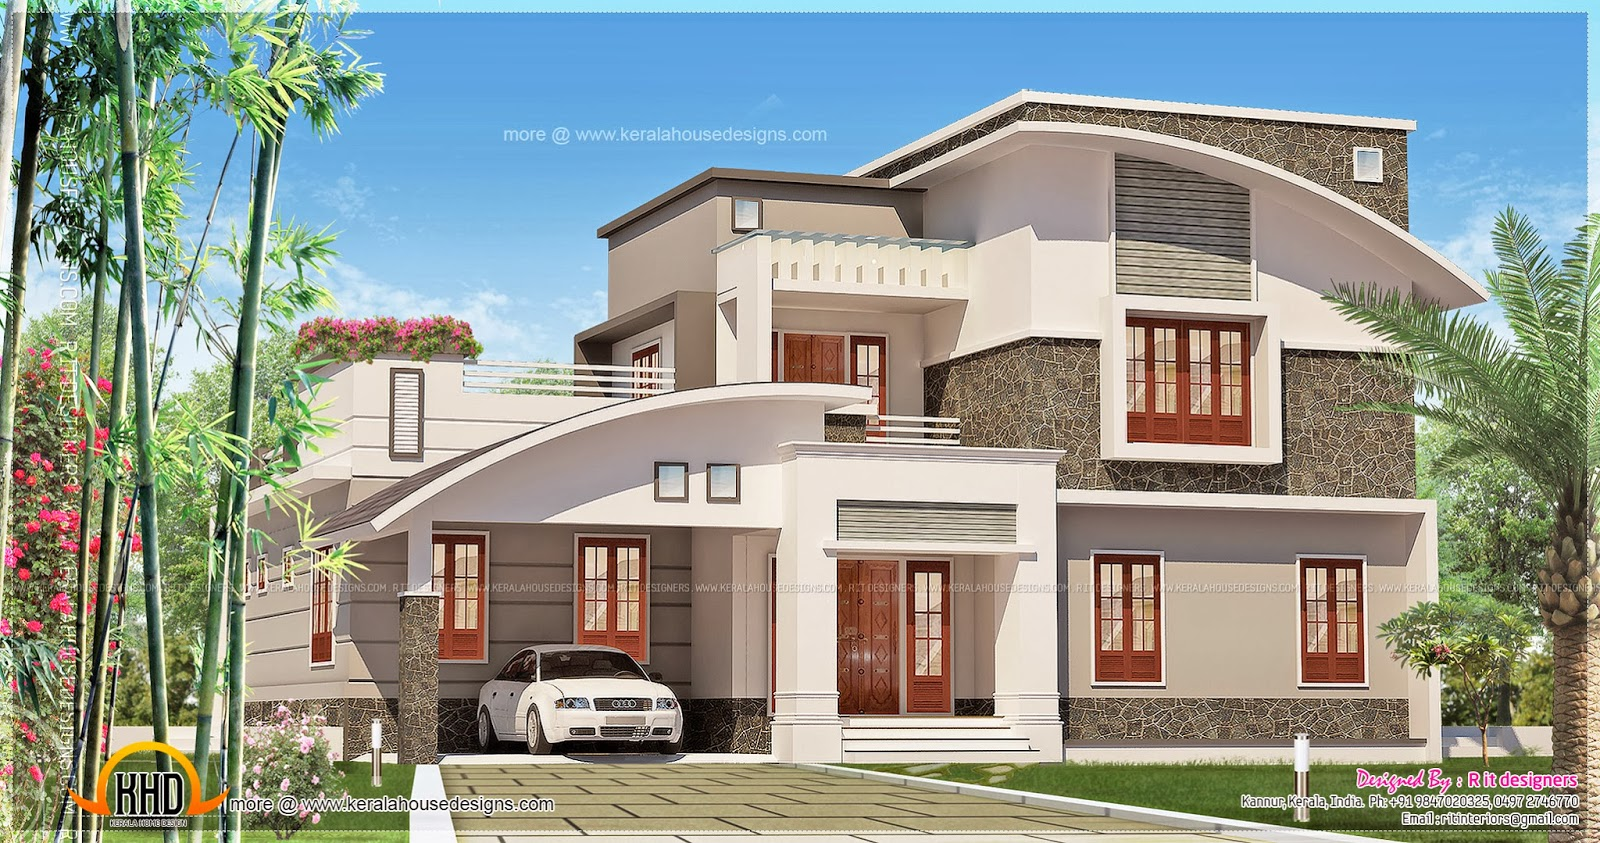 3 bedroom contemporary mix house exterior kerala home for New home models and plans